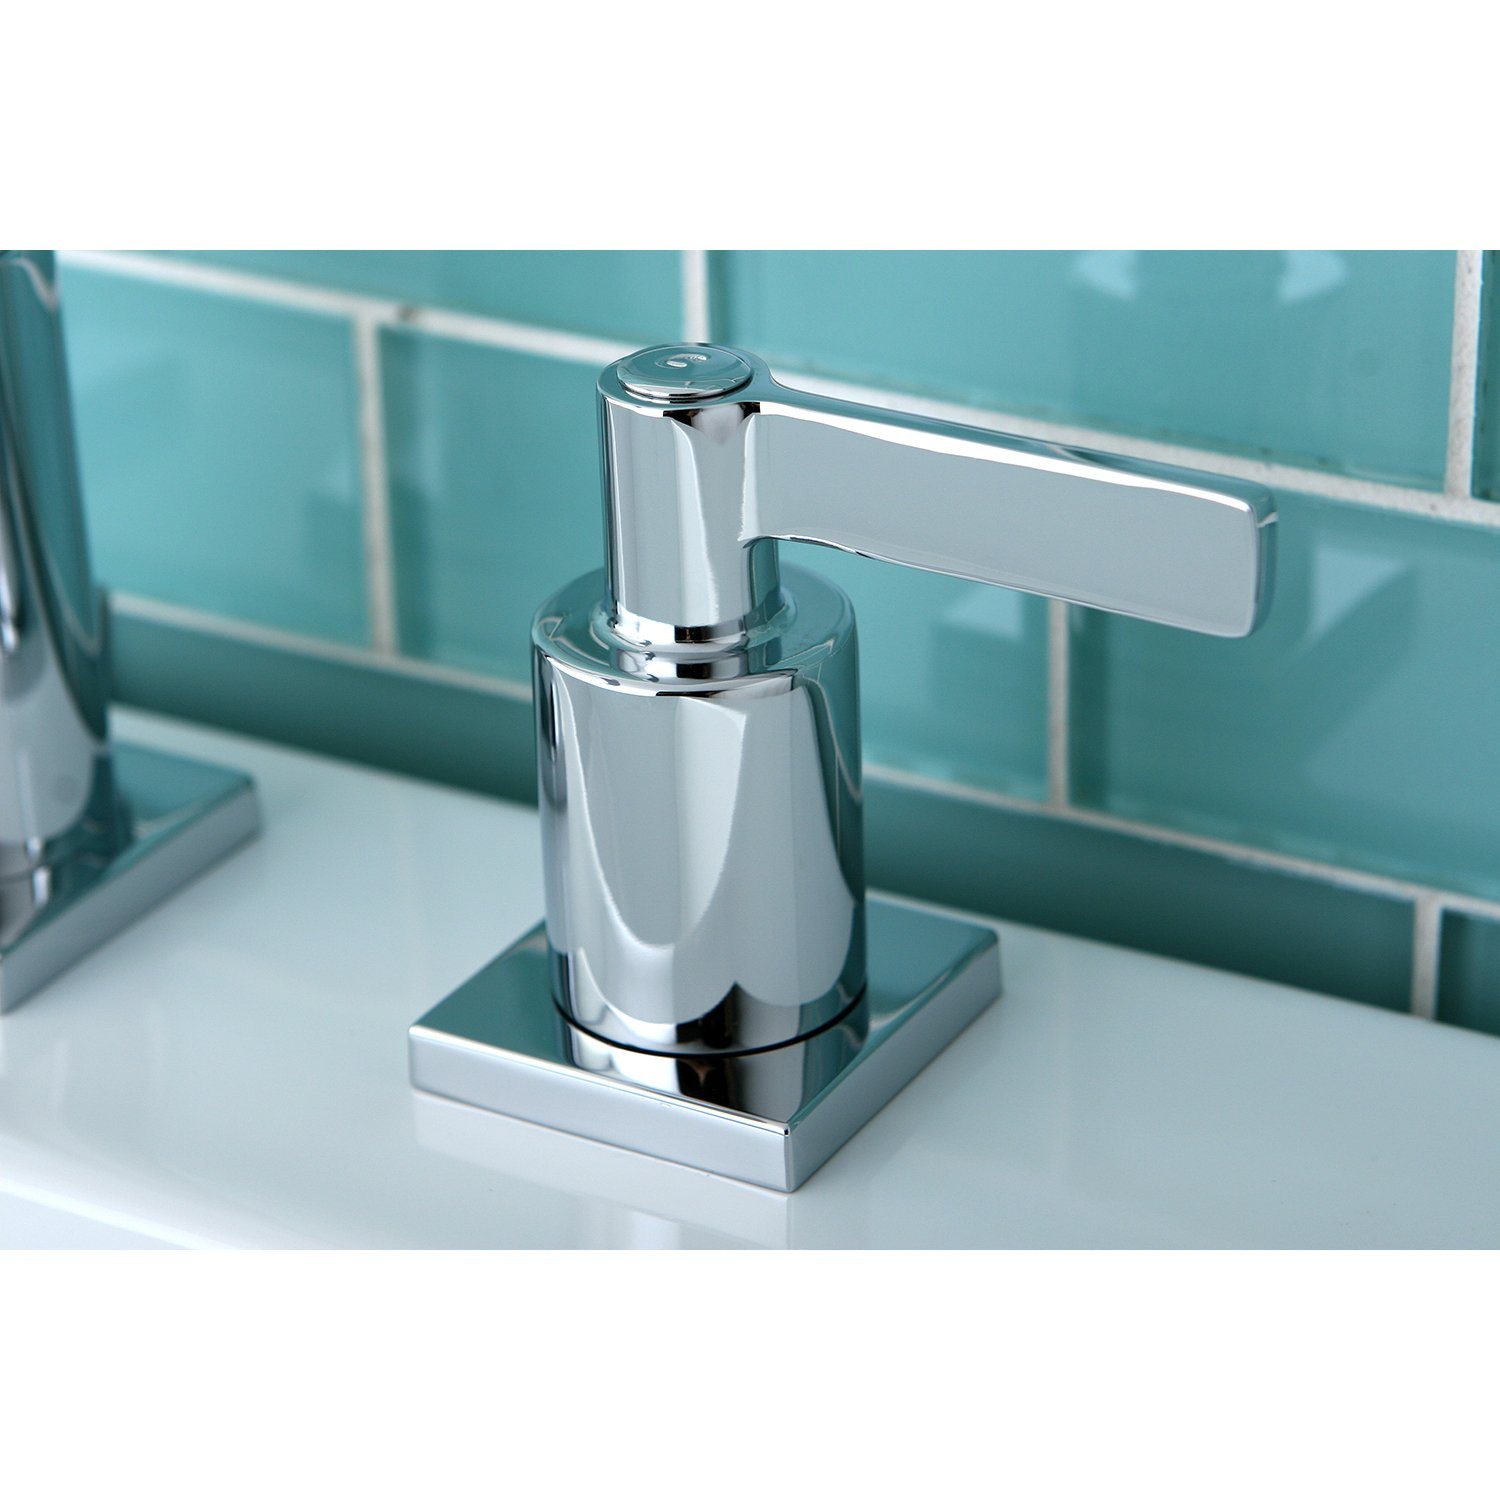 KINGSTON BRASS FS8961CTL Continental Widespread Lead Free Lavatory Faucet with Twin Lever Handles and Retail Pop-Up Polished Chrome